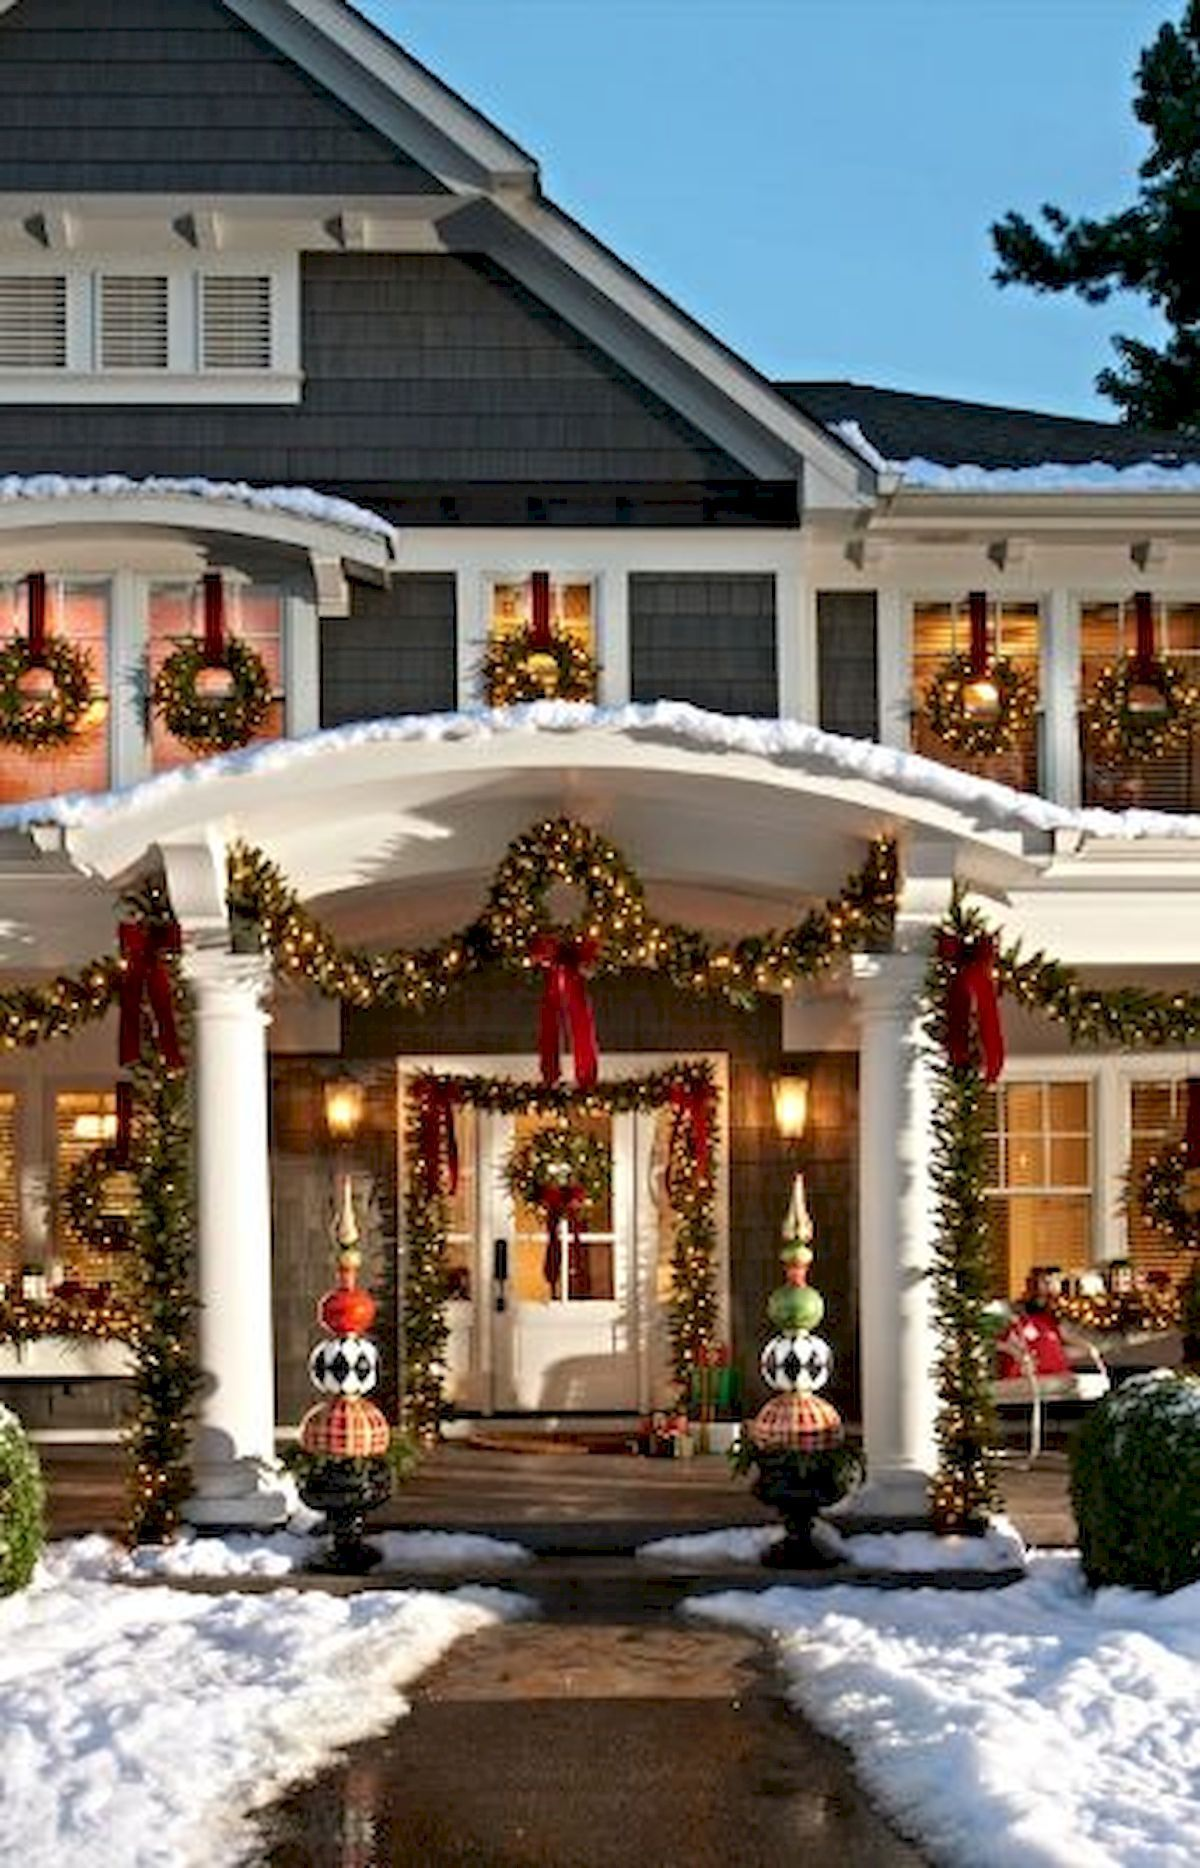 Awesome 50 Stunning Front Porch Christmas Lights Decorations Ideas Https Roomadness Co Outdoor Christmas Decorations Christmas Porch Outdoor Christmas Lights